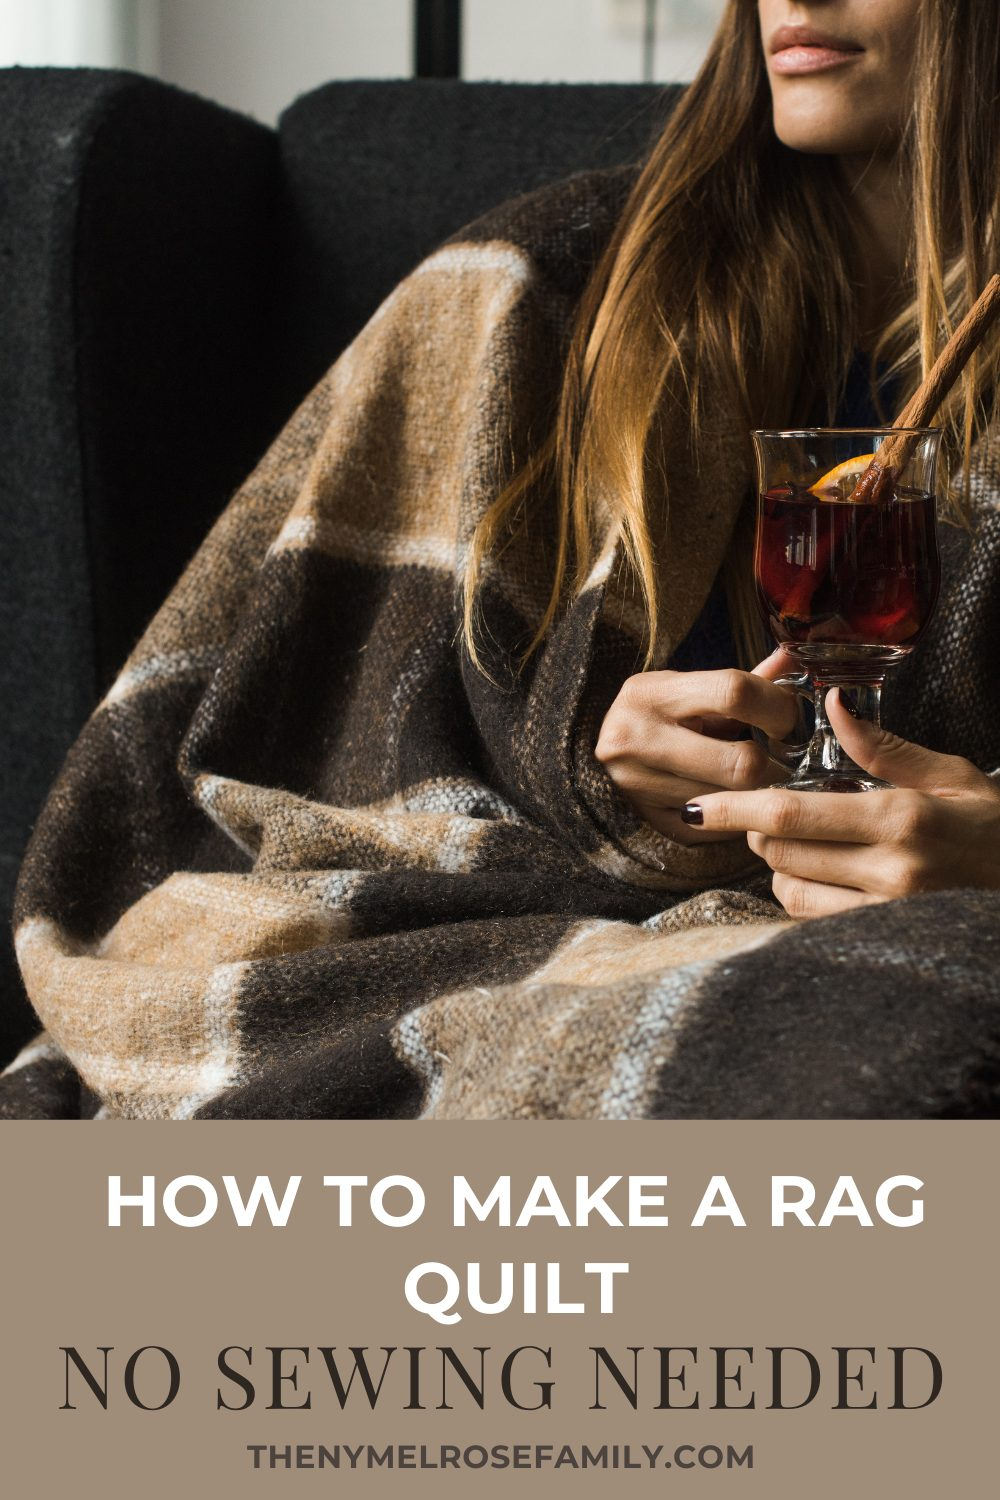 If you are a DIY enthusiast like me, then you know how satisfying it feels to create a new product out of old materials. In this post, I'd like to teach you how to make a rag quilt without sewing! You can use this quilt for yourself, or you can gift it to friends and loved ones. You can even customize it by choosing fabrics that will complement your recipient's personality. The finished product will feel comfortable and will look amazing. #themelrosefamily #doityourself #diyproject #crafty #diys #diyideas #artsandcrafts diydecor #craft #imadethis #handcrafted #crafts #maker #makers via @jennymelrose